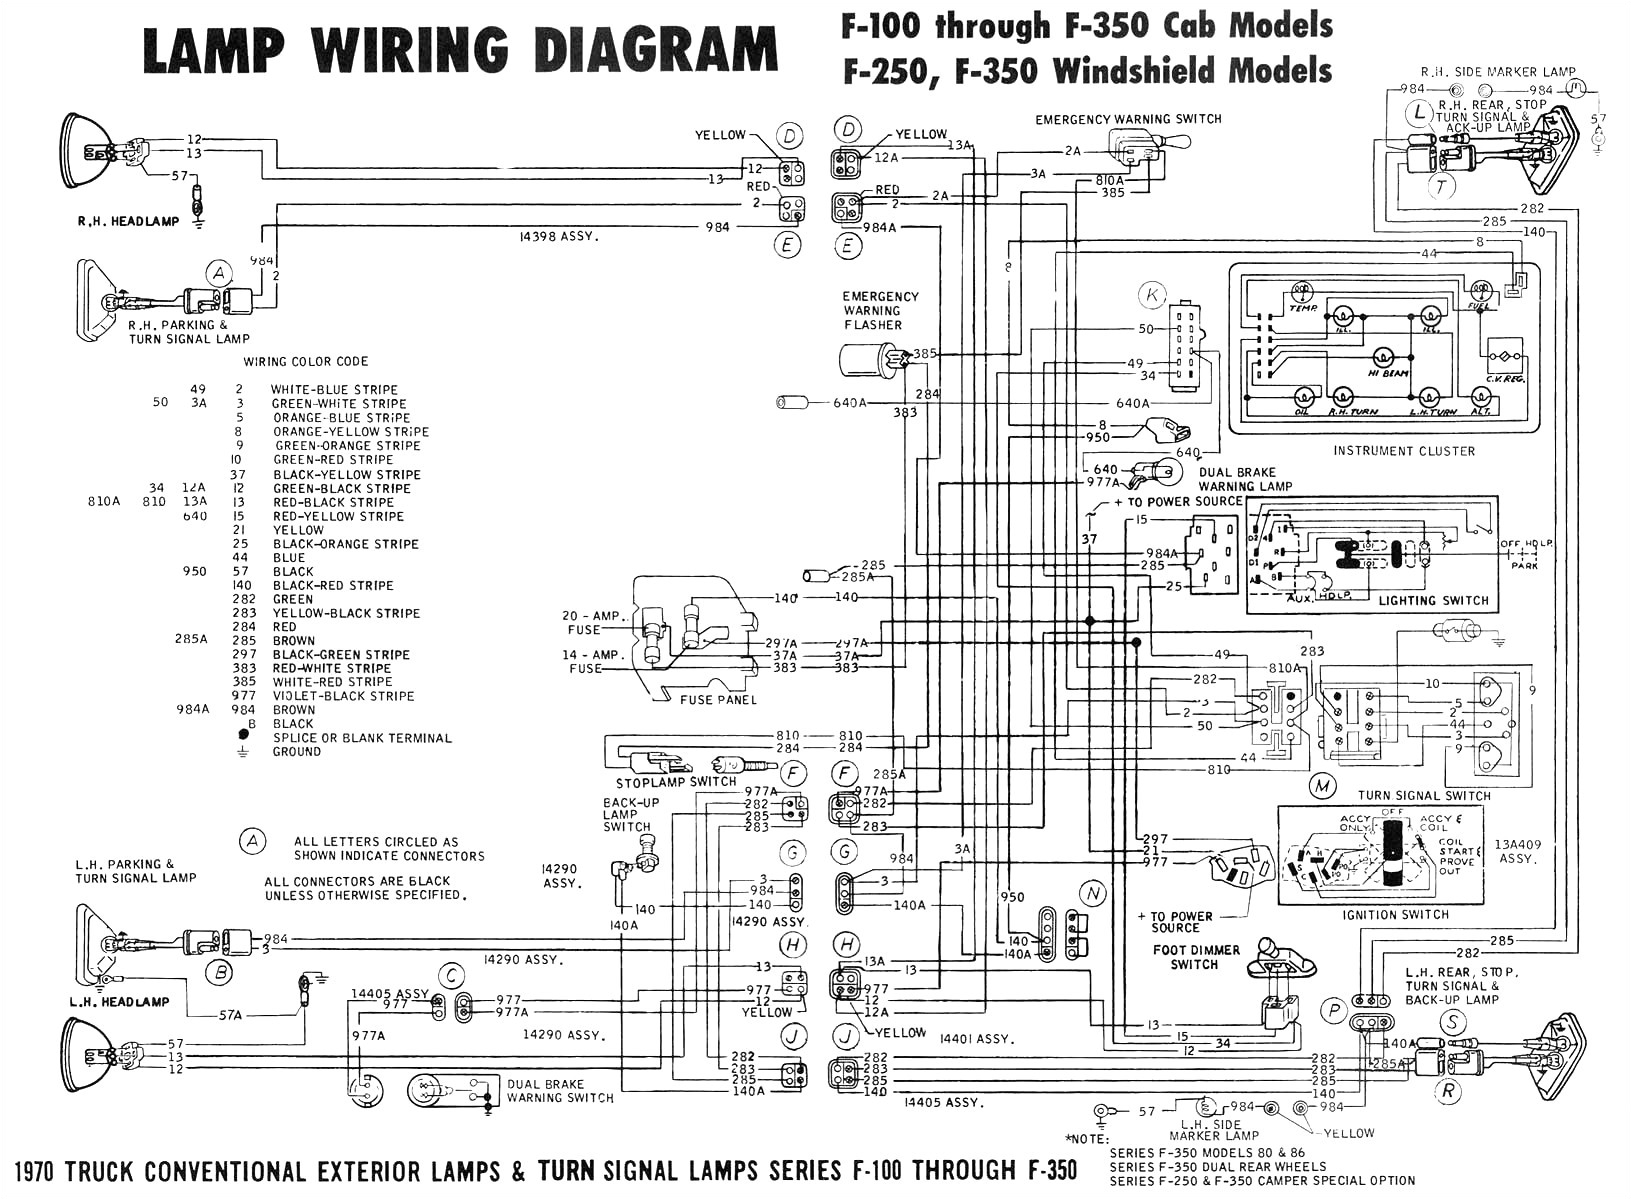 transmission wiring harness on triumph spitfire 1500 engine diagram mix jeep wiring diagram overdrive wiring diagram